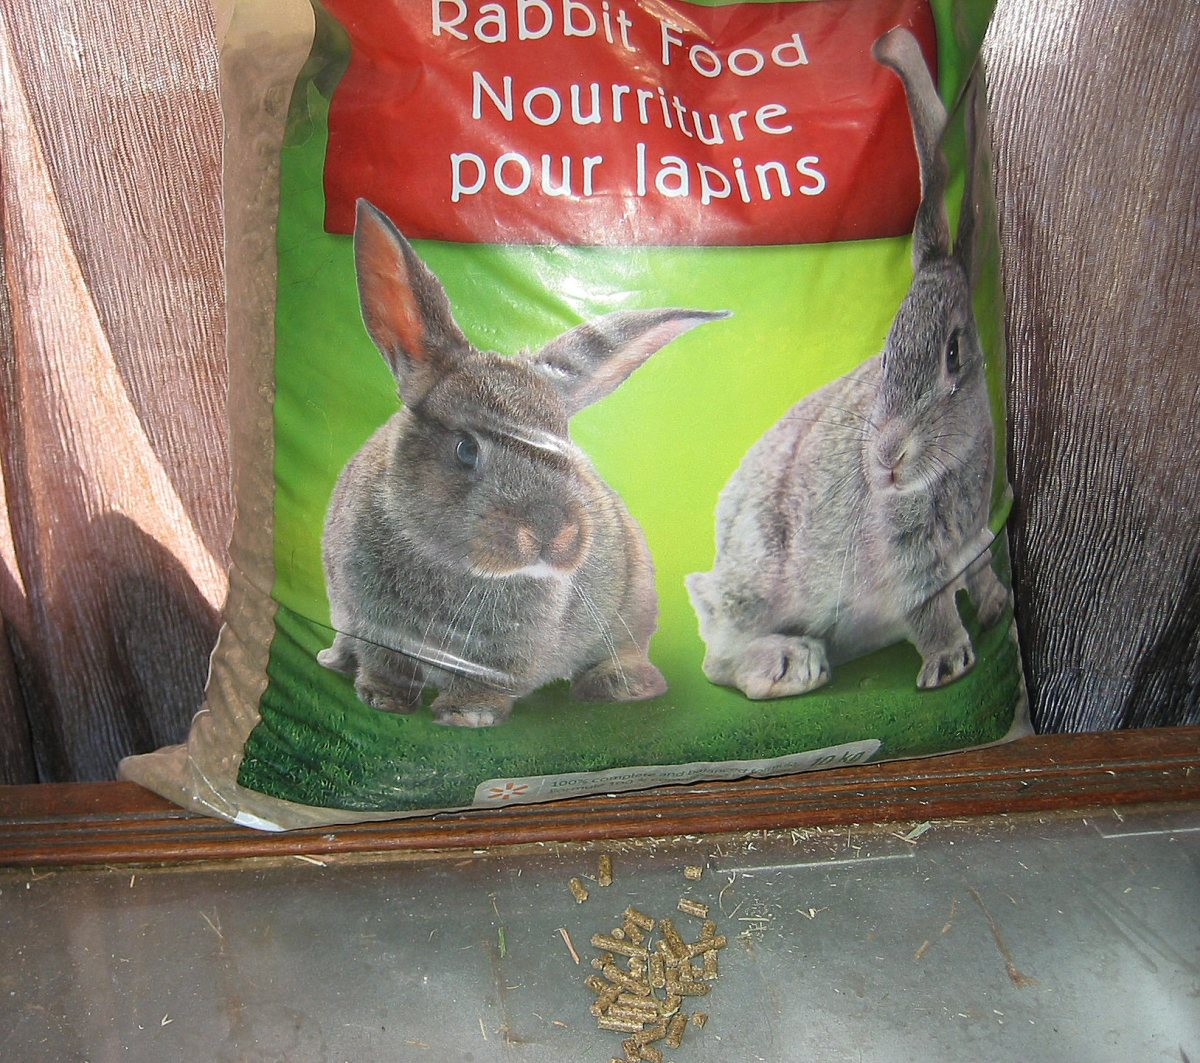 Rabbit pellets - a welcome treat for any rabbit.